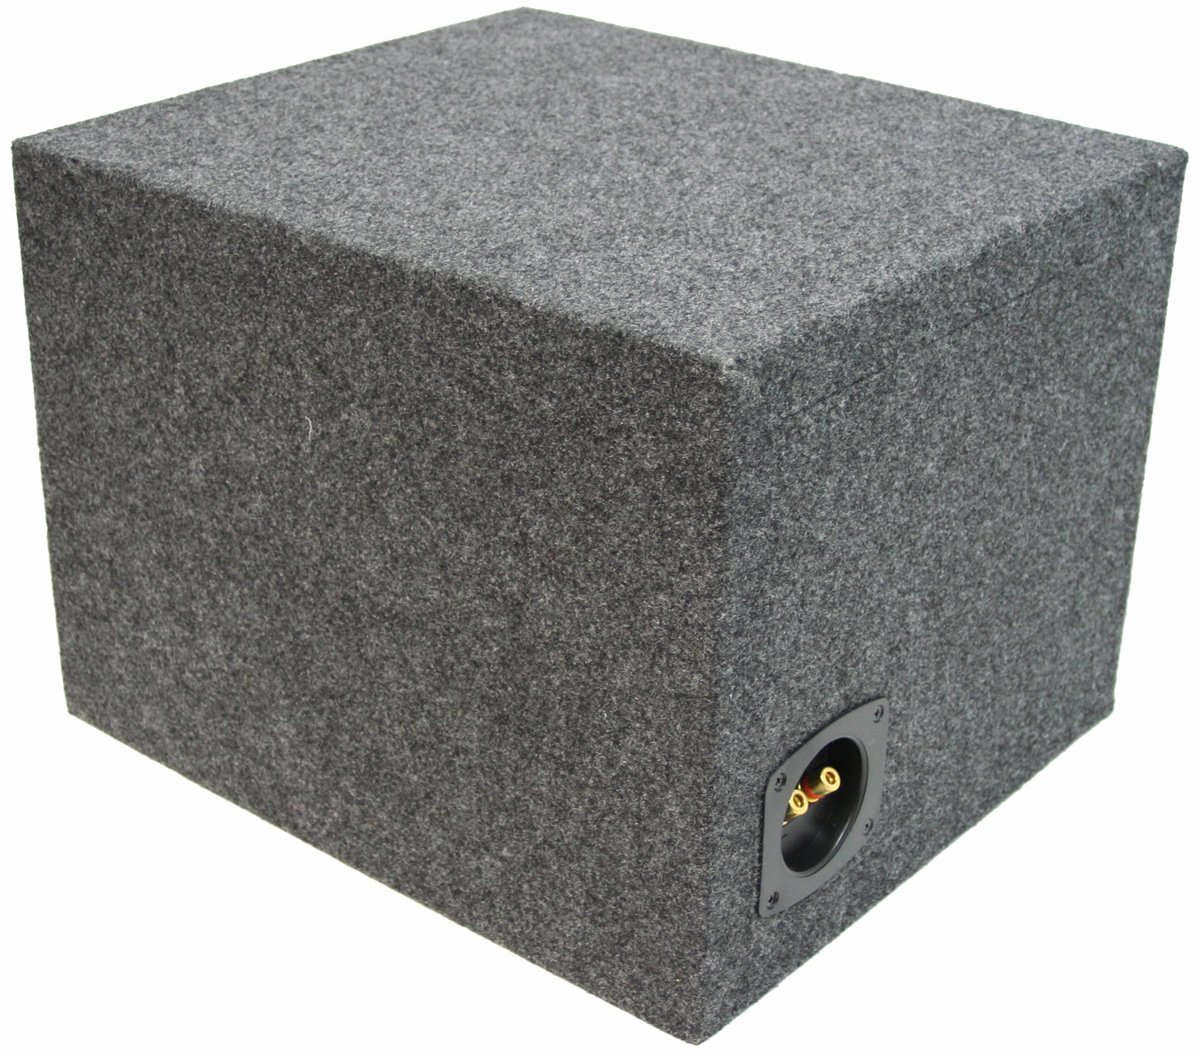 ASC Single 12'' Subwoofer Universal Fit Vented Port Sub Box Speaker Enclosure by American Sound Connection (Image #2)